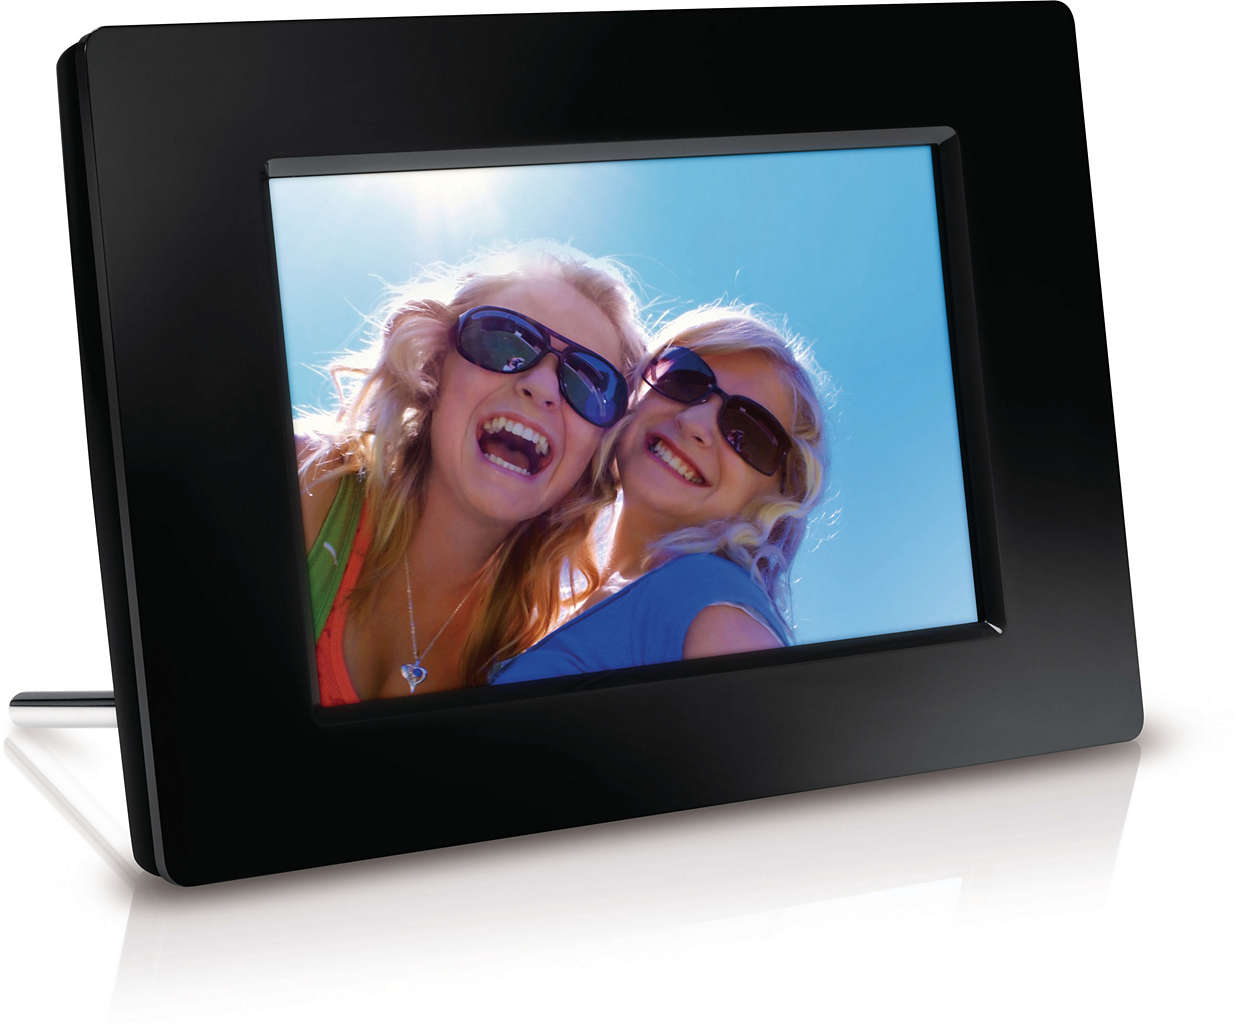 Digital photoframe spf1307 05 philips for Cornici elettroniche